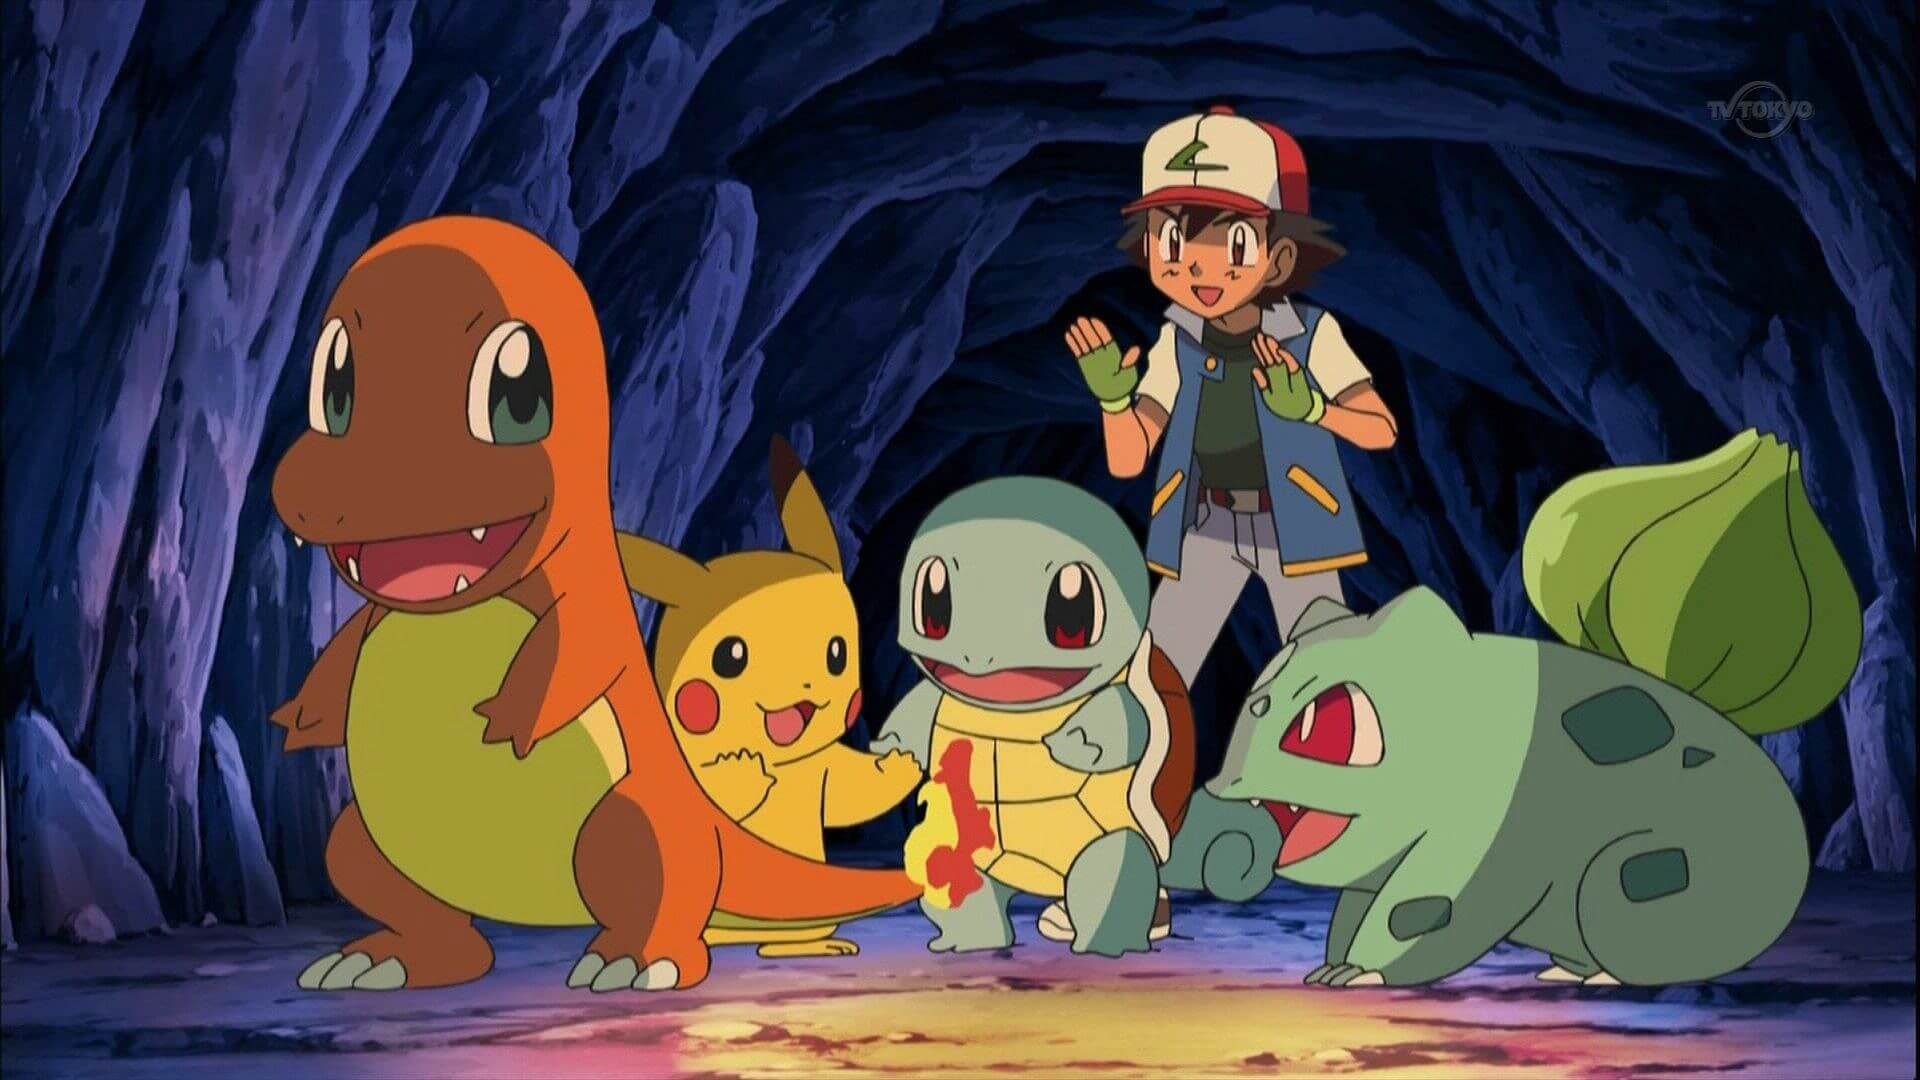 it-s-about-time-for-a-live-action-pokemon-movie-and-here-s-who-should-be-in-it-pokemon-751319